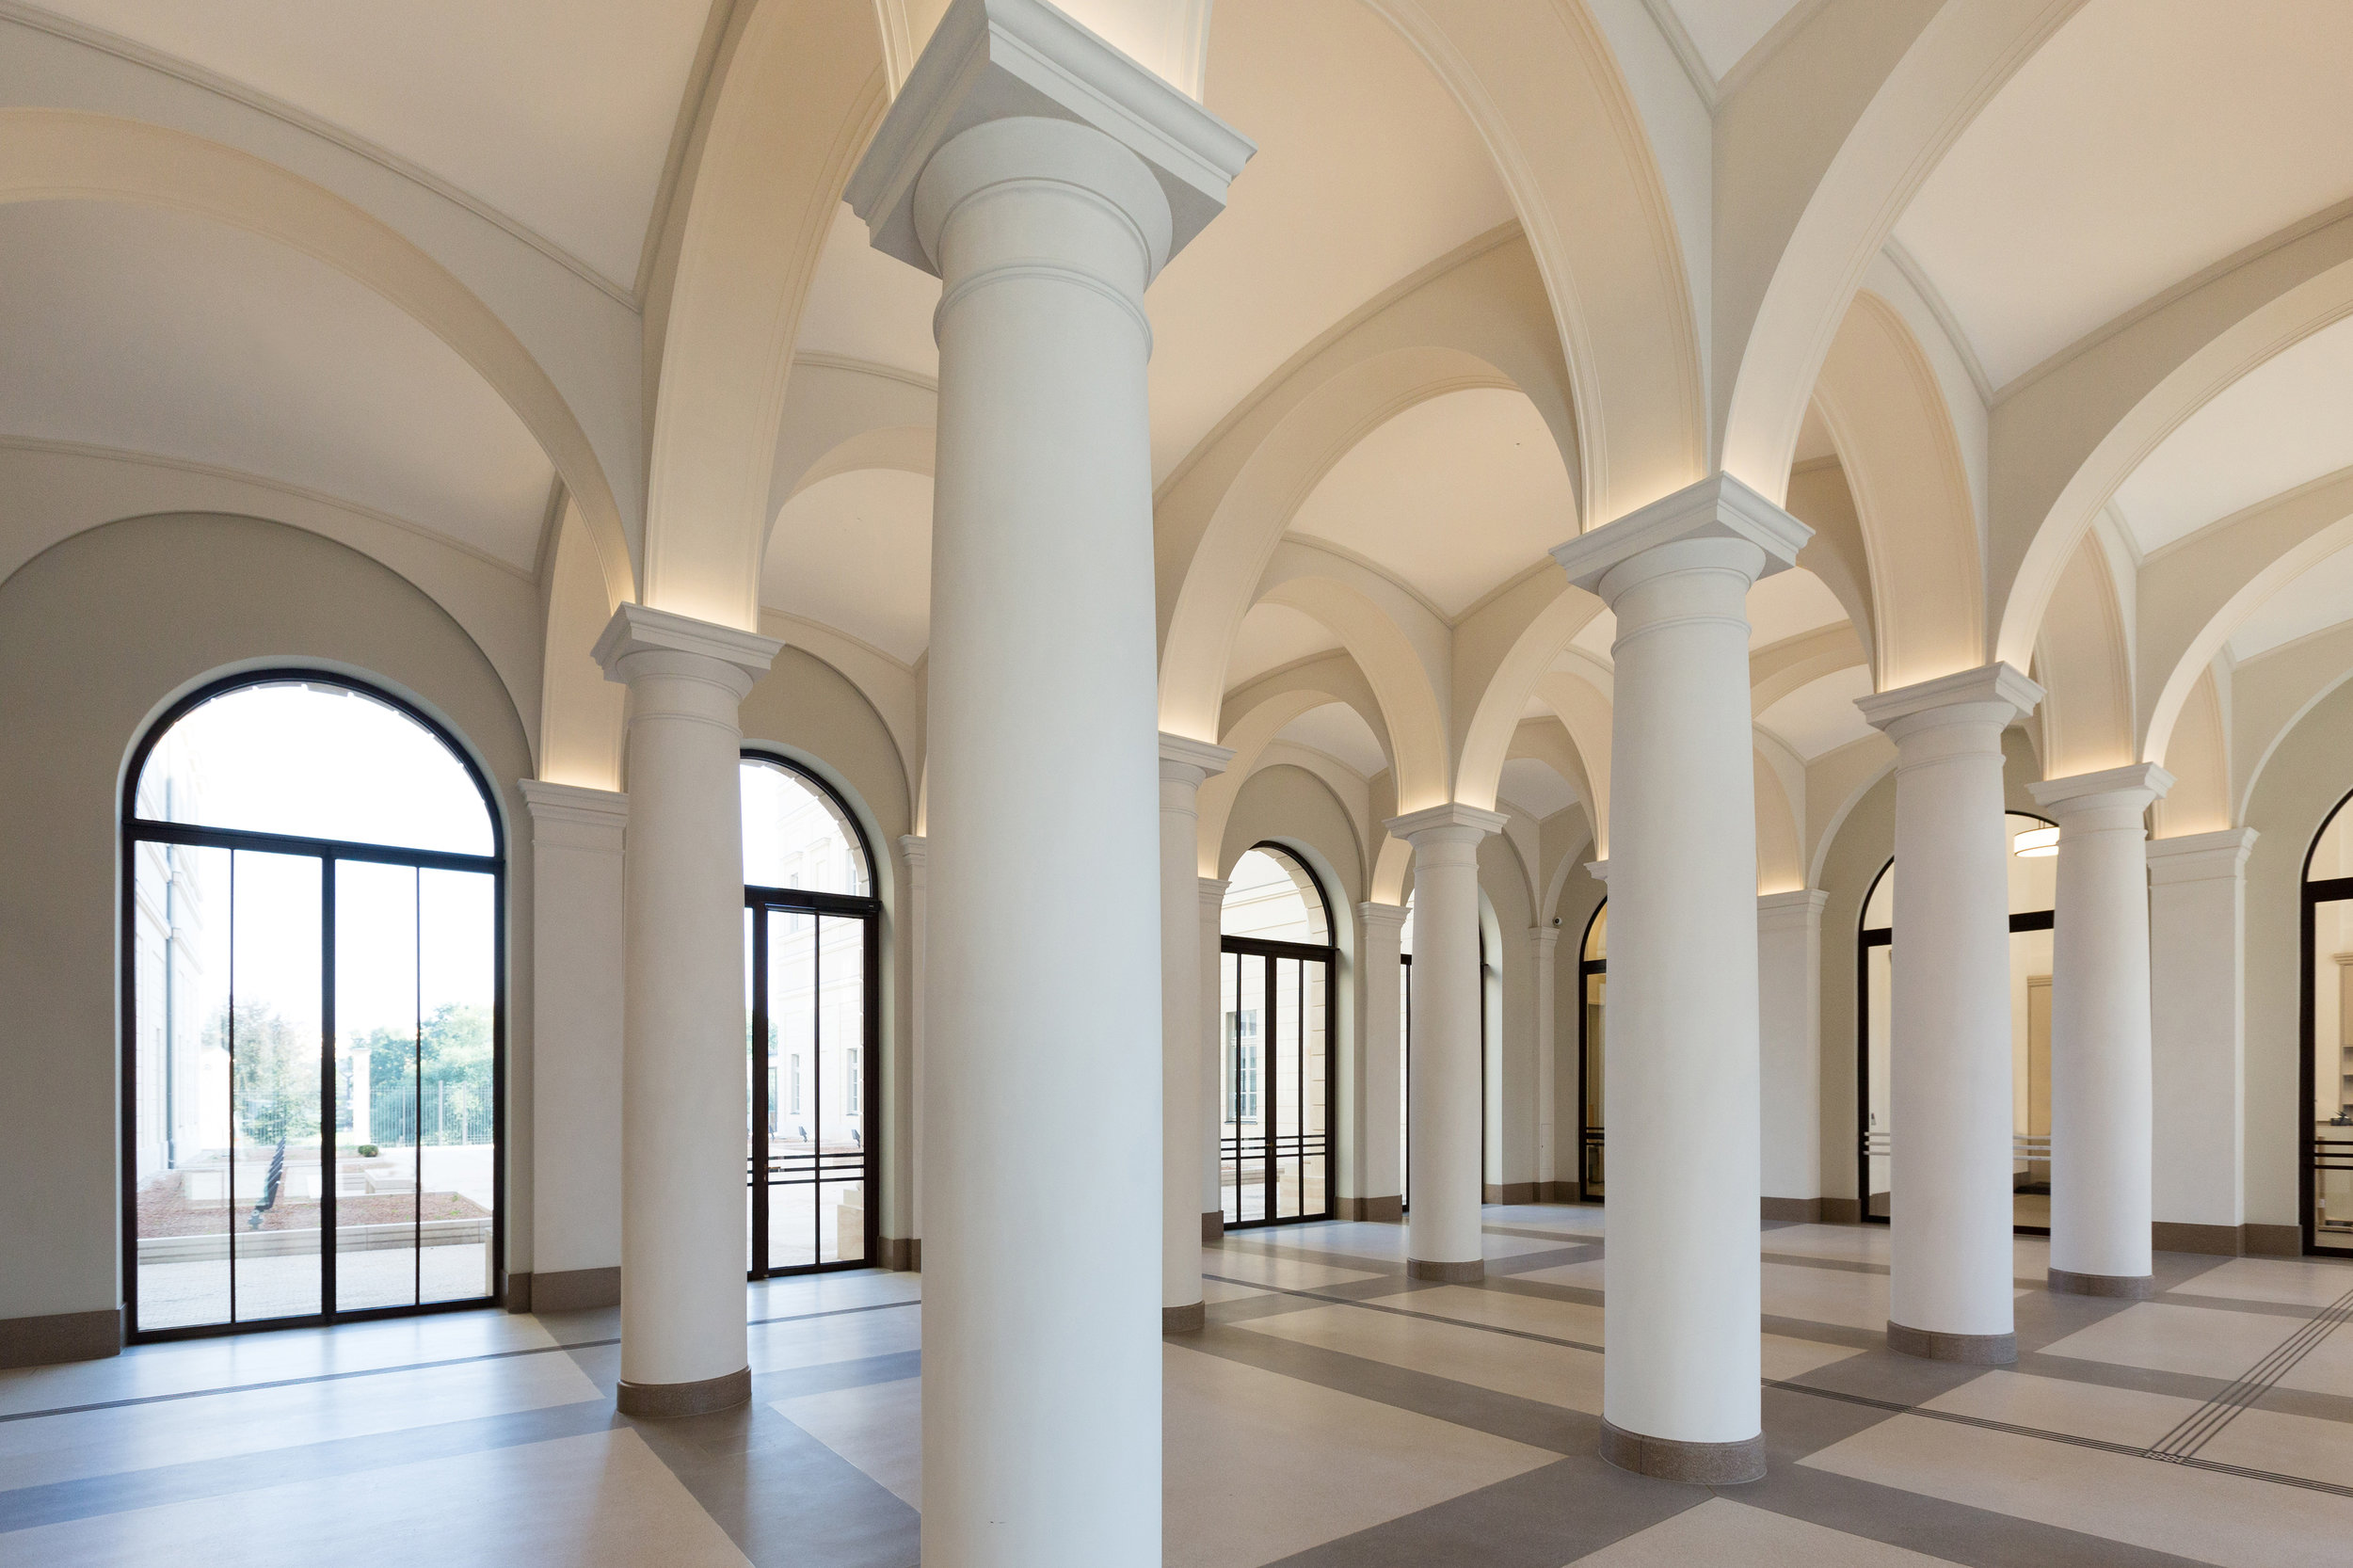 Museum Barberini, foyer, photo: Helge Mundt, © Museum Barberini